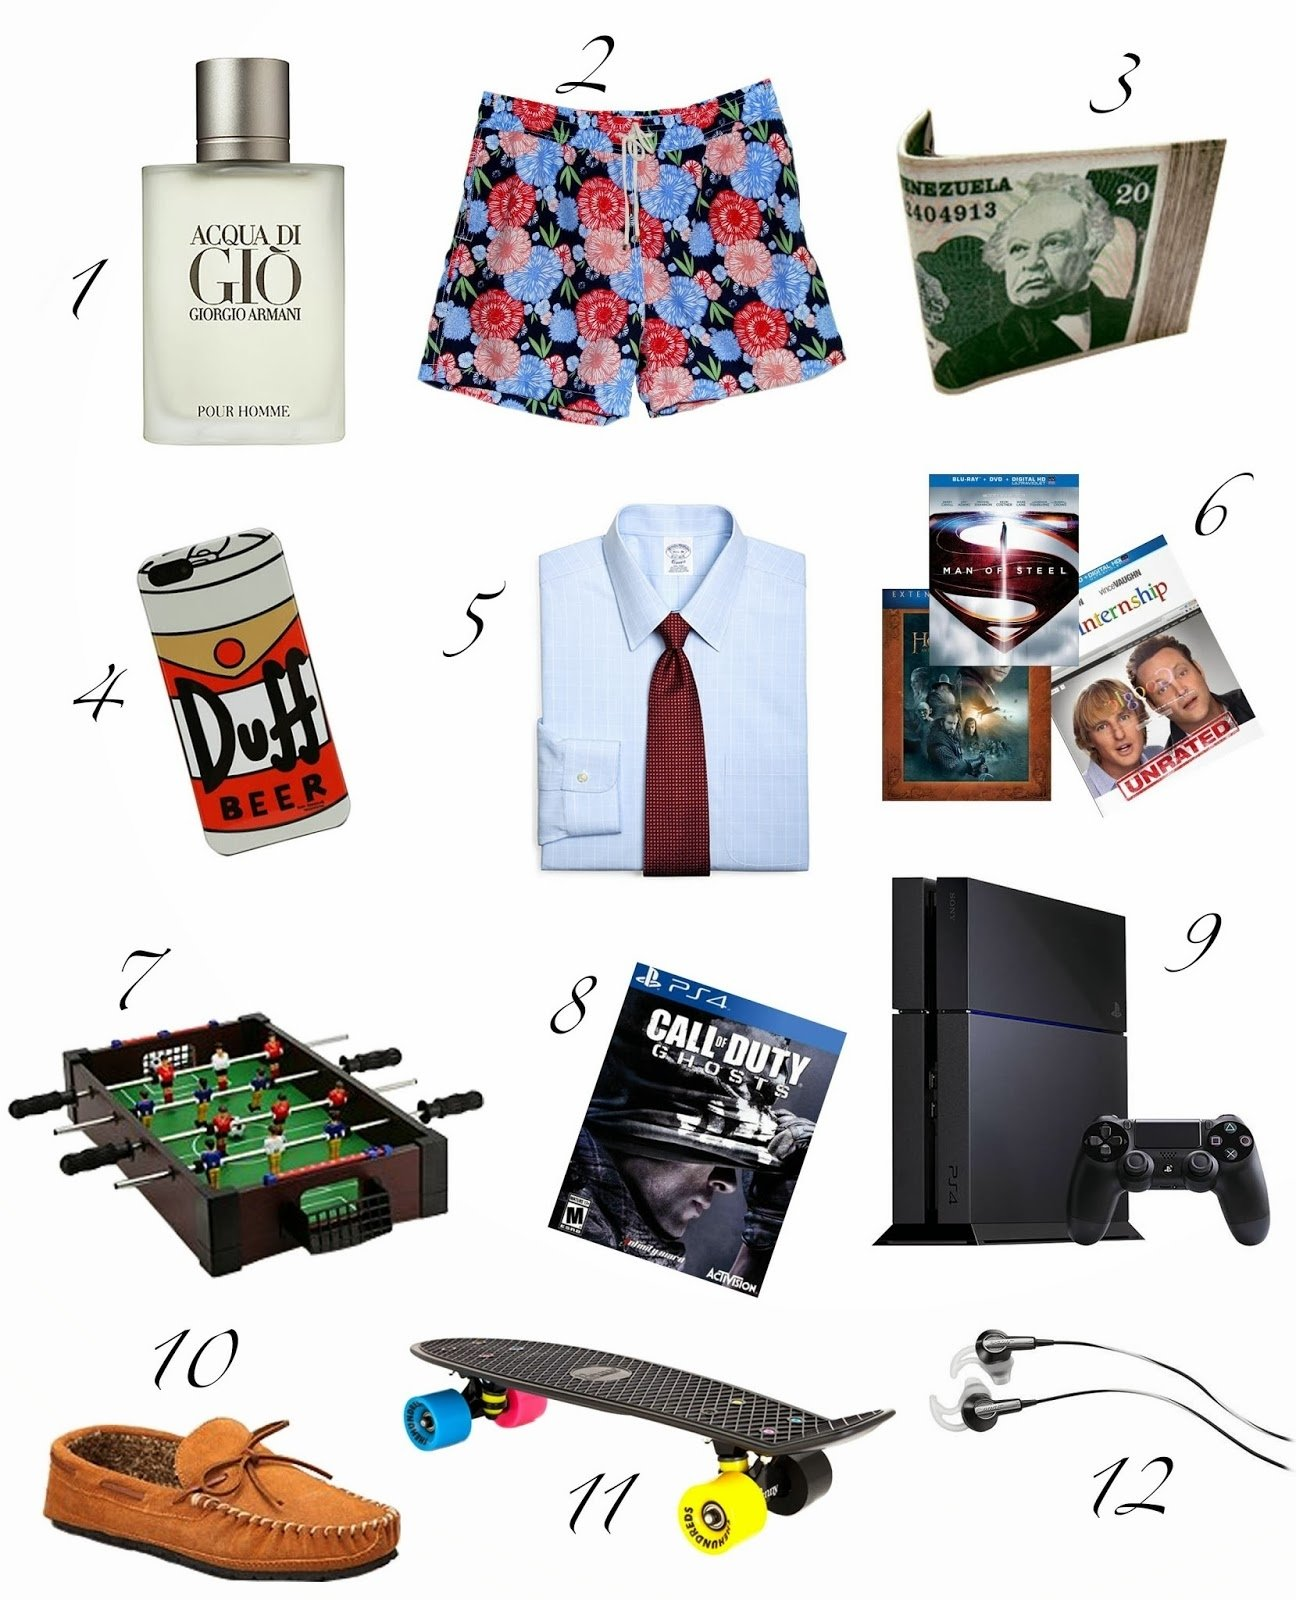 gifts design ideas: crazy impressive gift ideas for men in their 20s